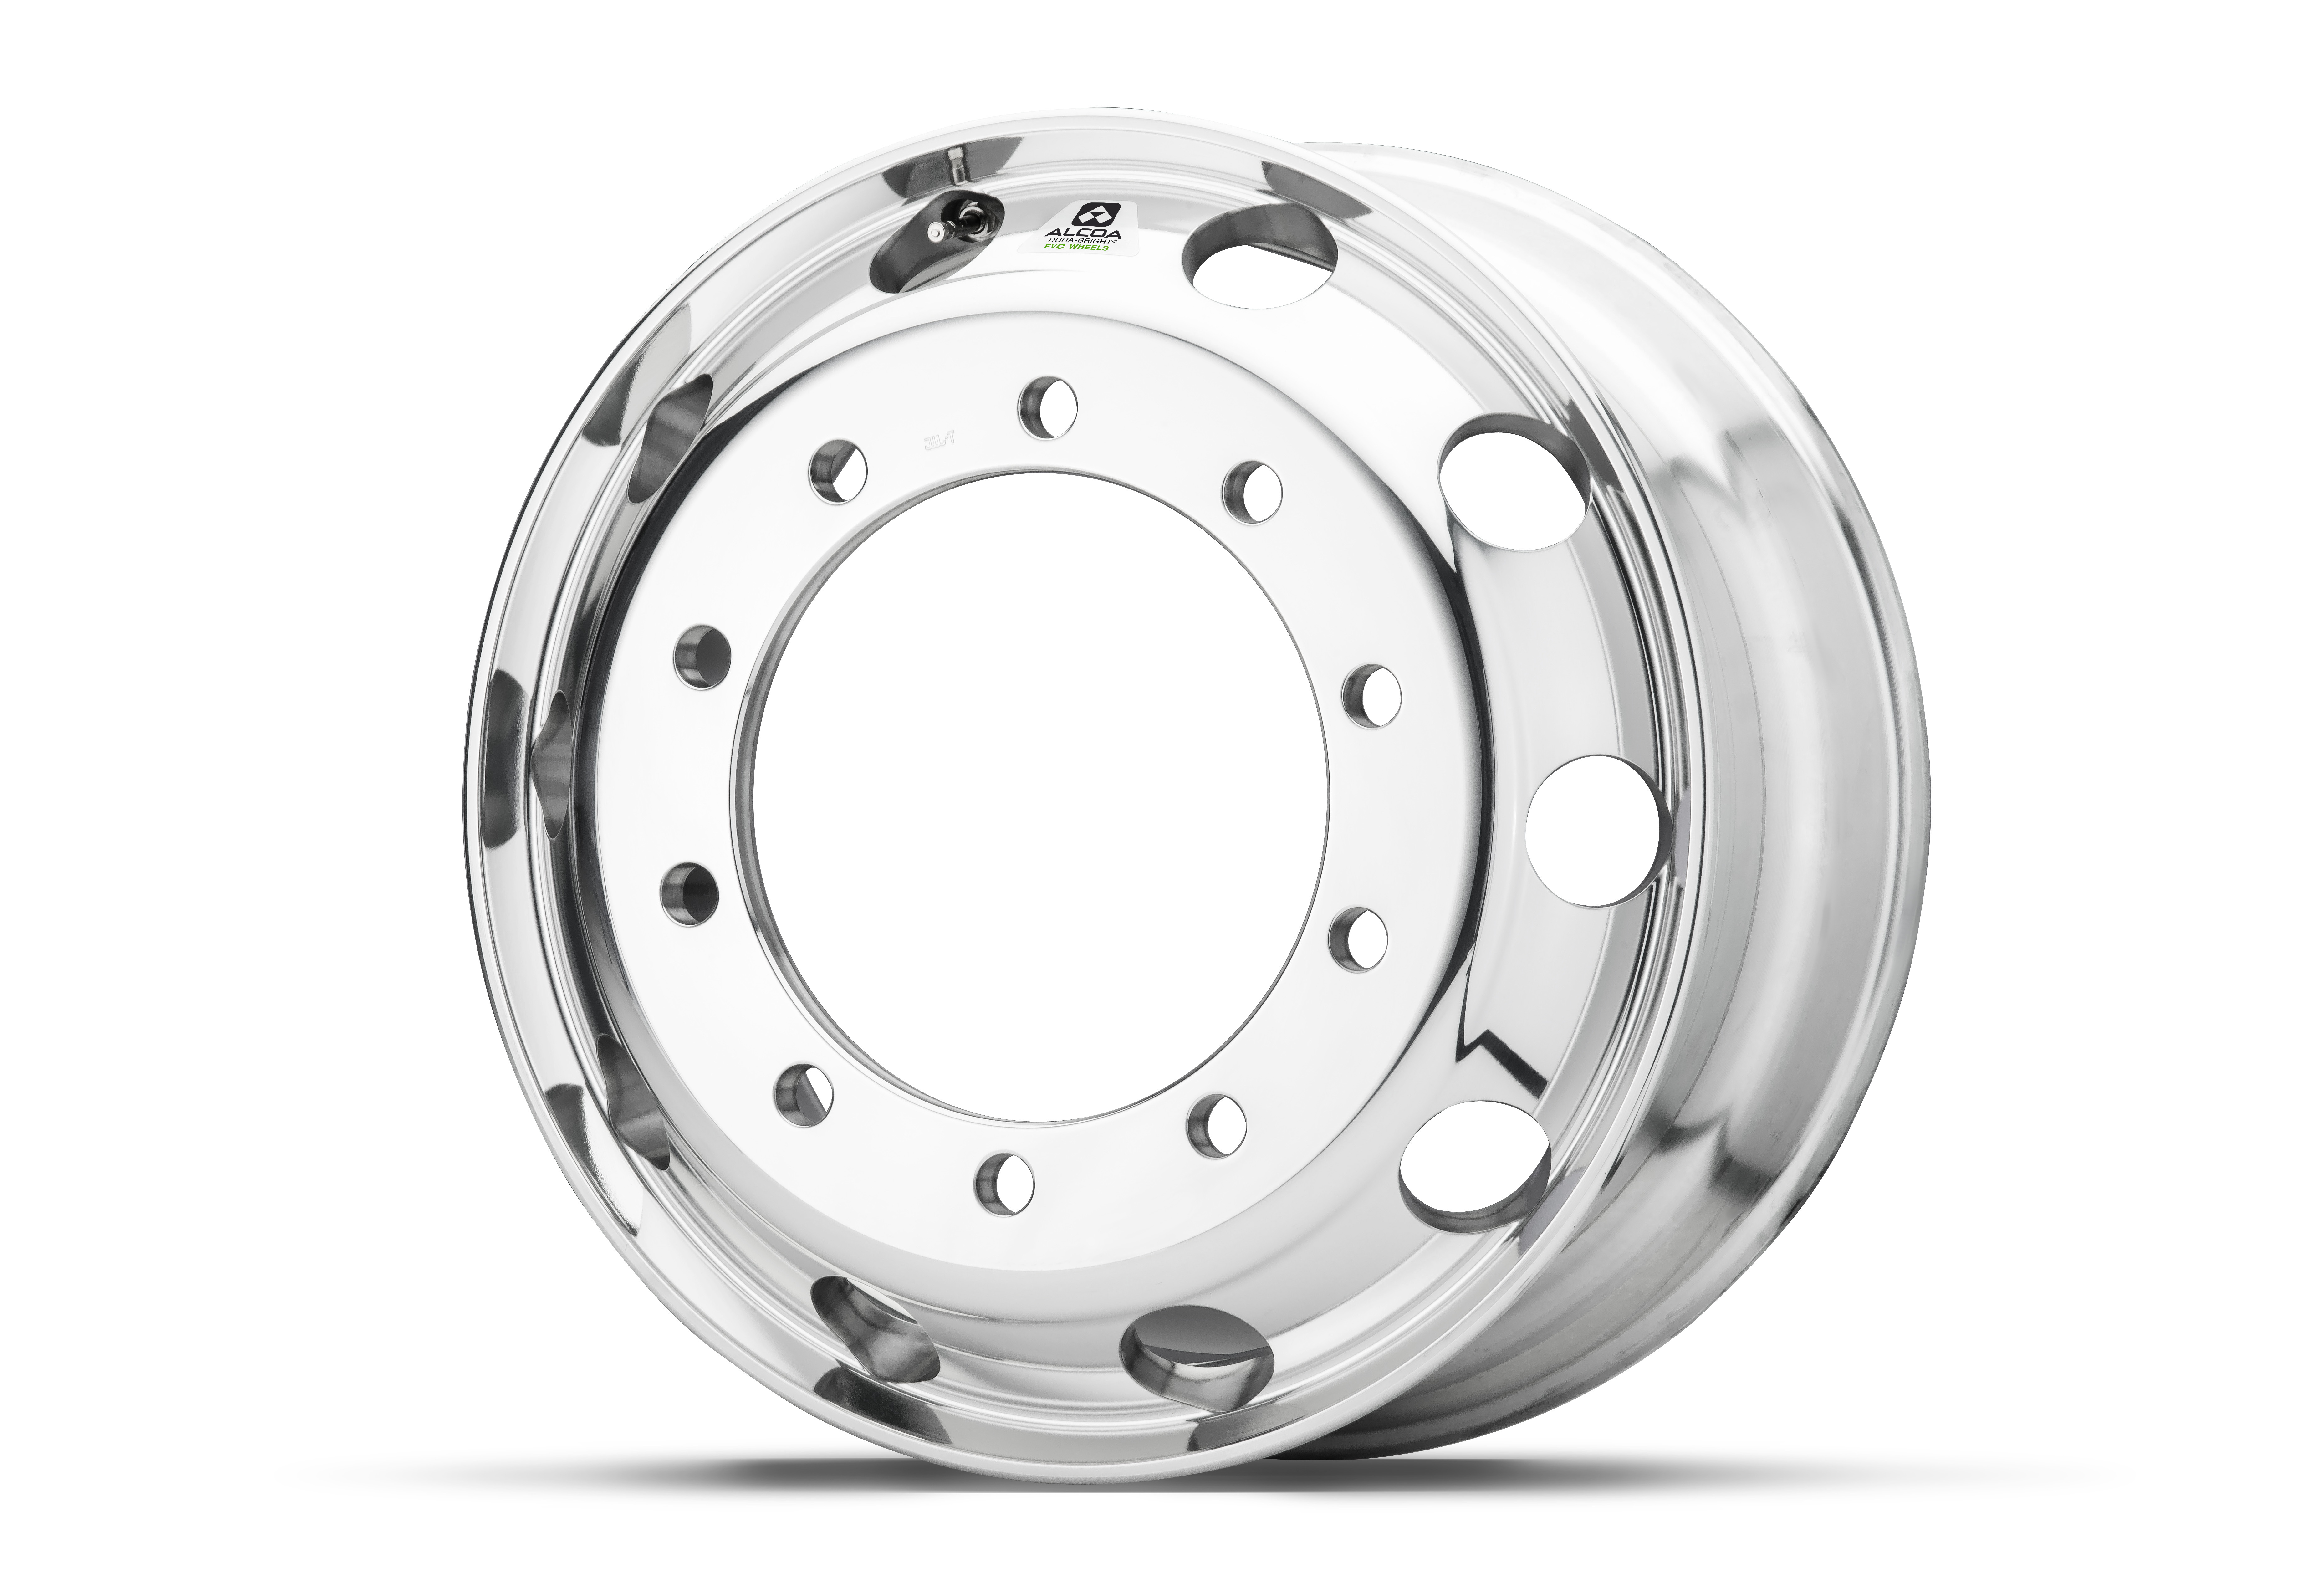 To meet growing demand, Alcoa is doubling European production of its lightweight, durable, low-maintenance Dura-Bright® EVO surface-treated truck wheels, shown here, through a US$13 million production line expansion in Hungary. (Photo: Business Wire)